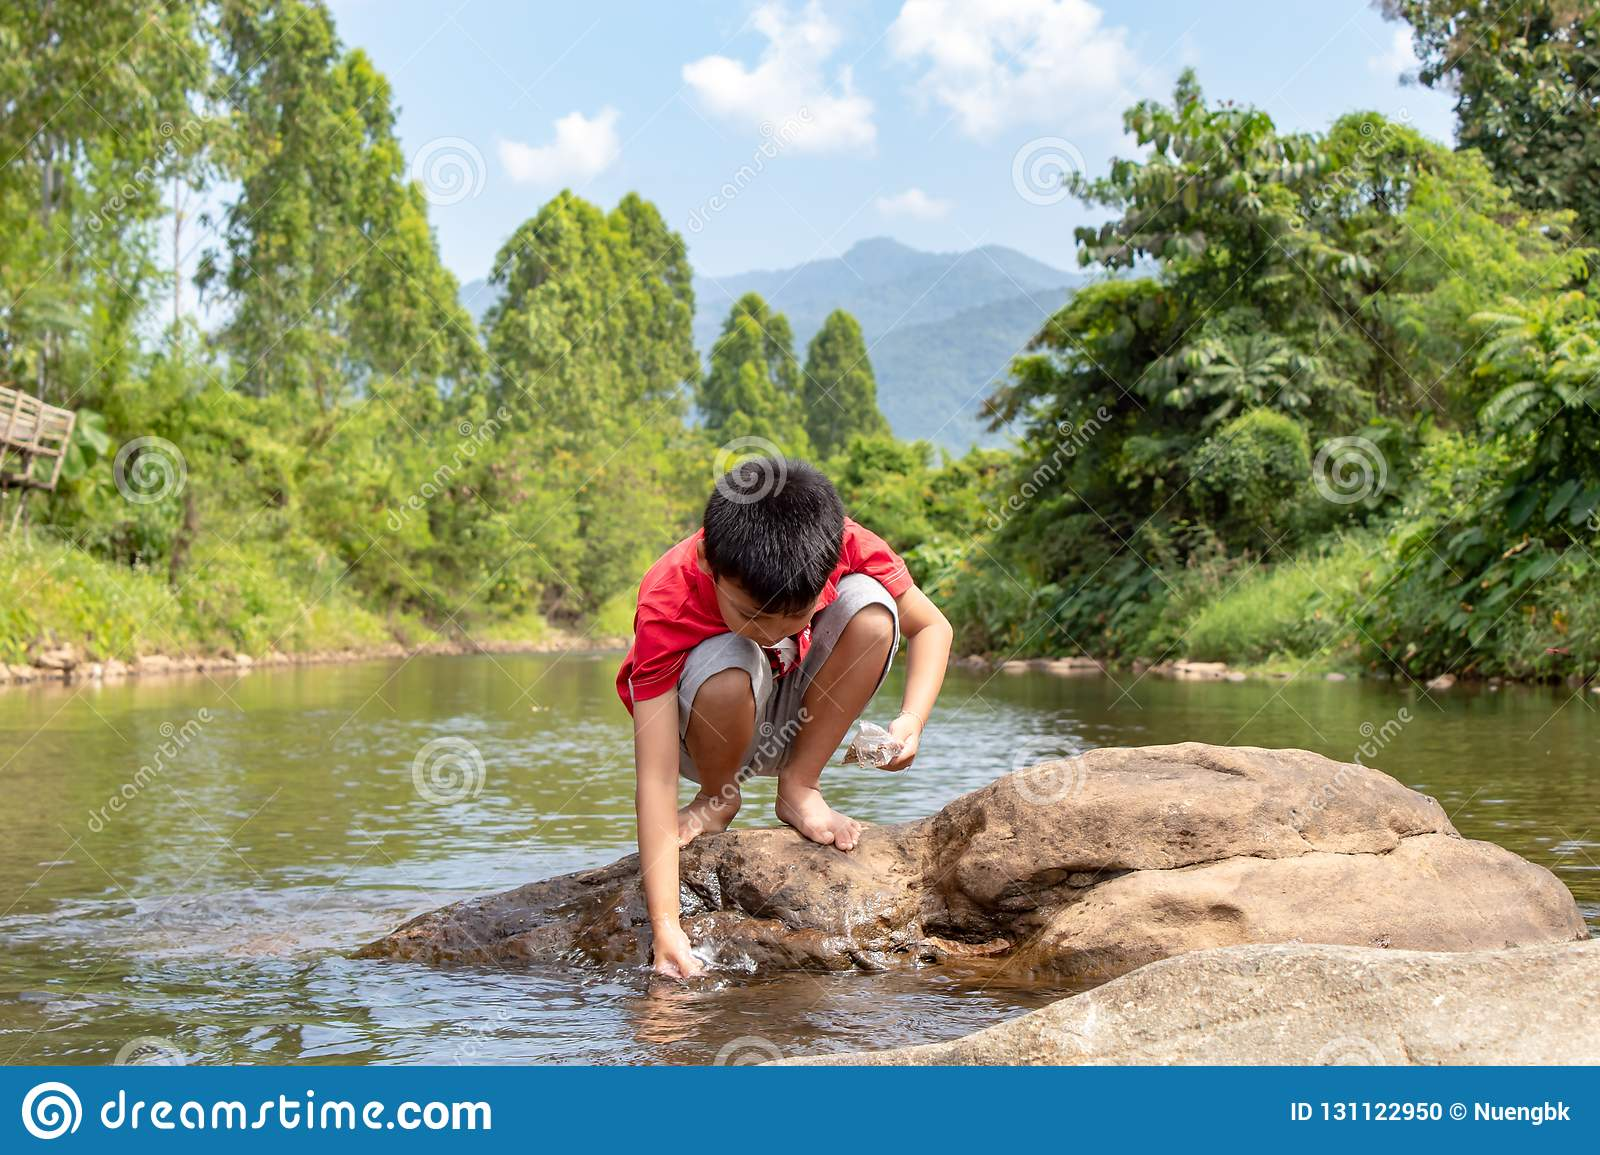 Asian boy looking at fish in a stream.Asian boys are feeding the fish in the stream.